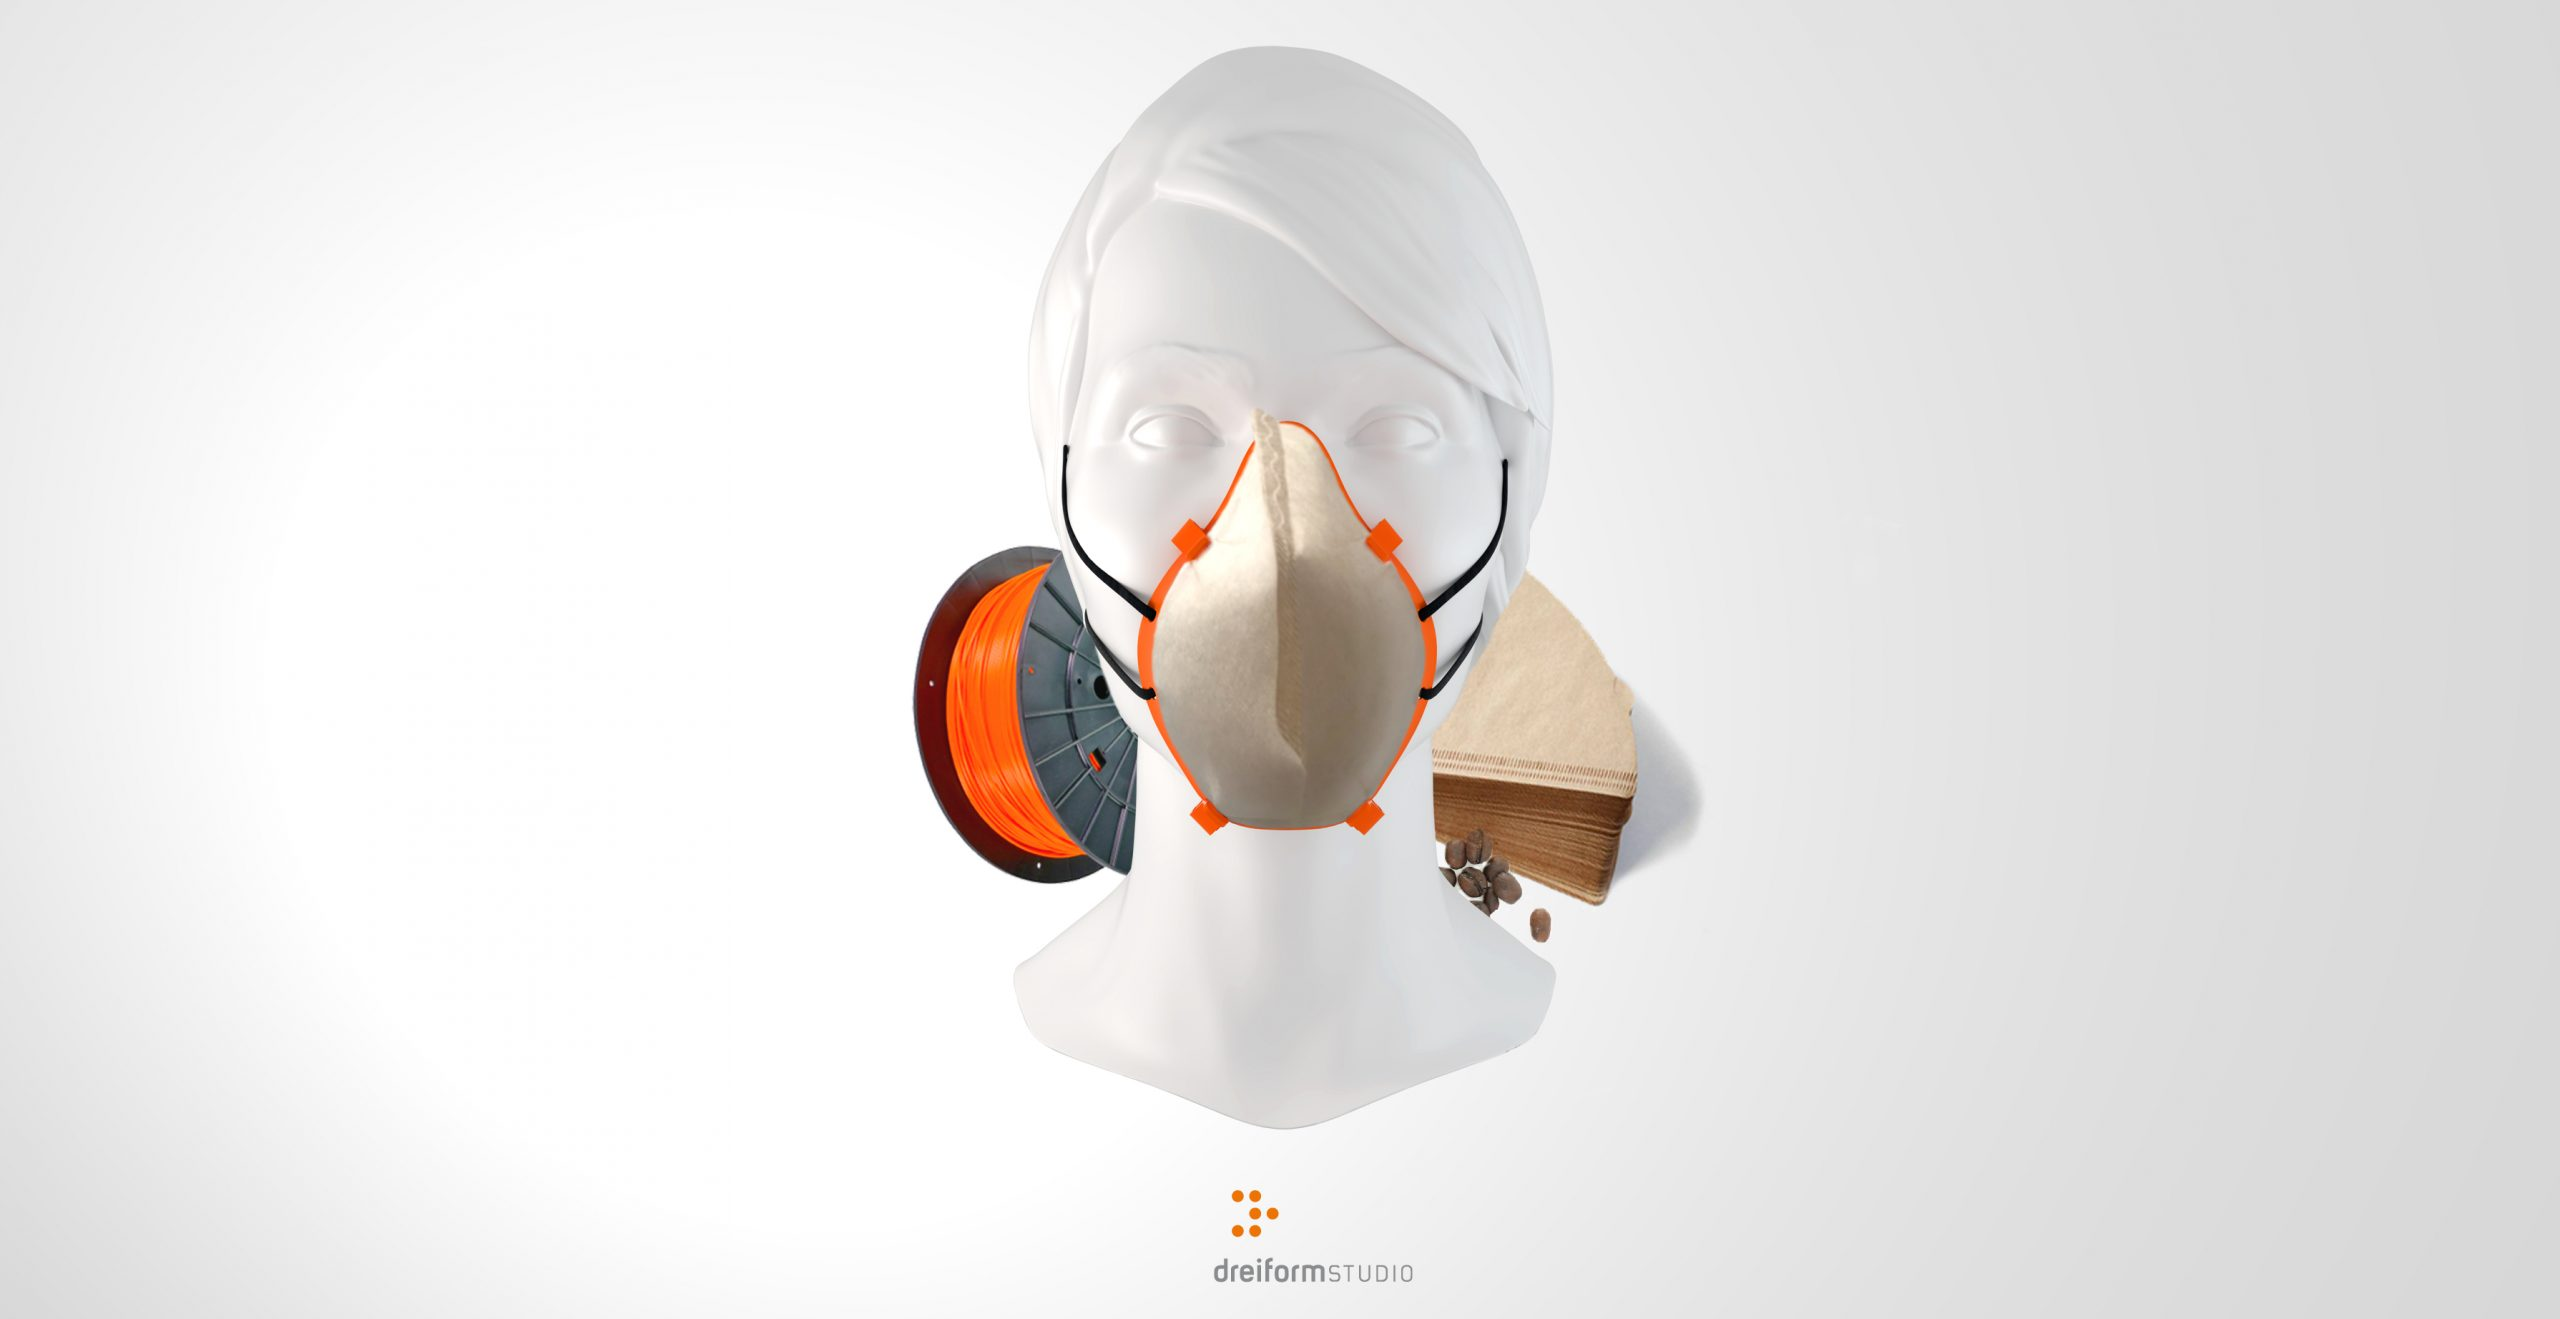 white torso with orange 3d printed caffee filter face mask on, on white background